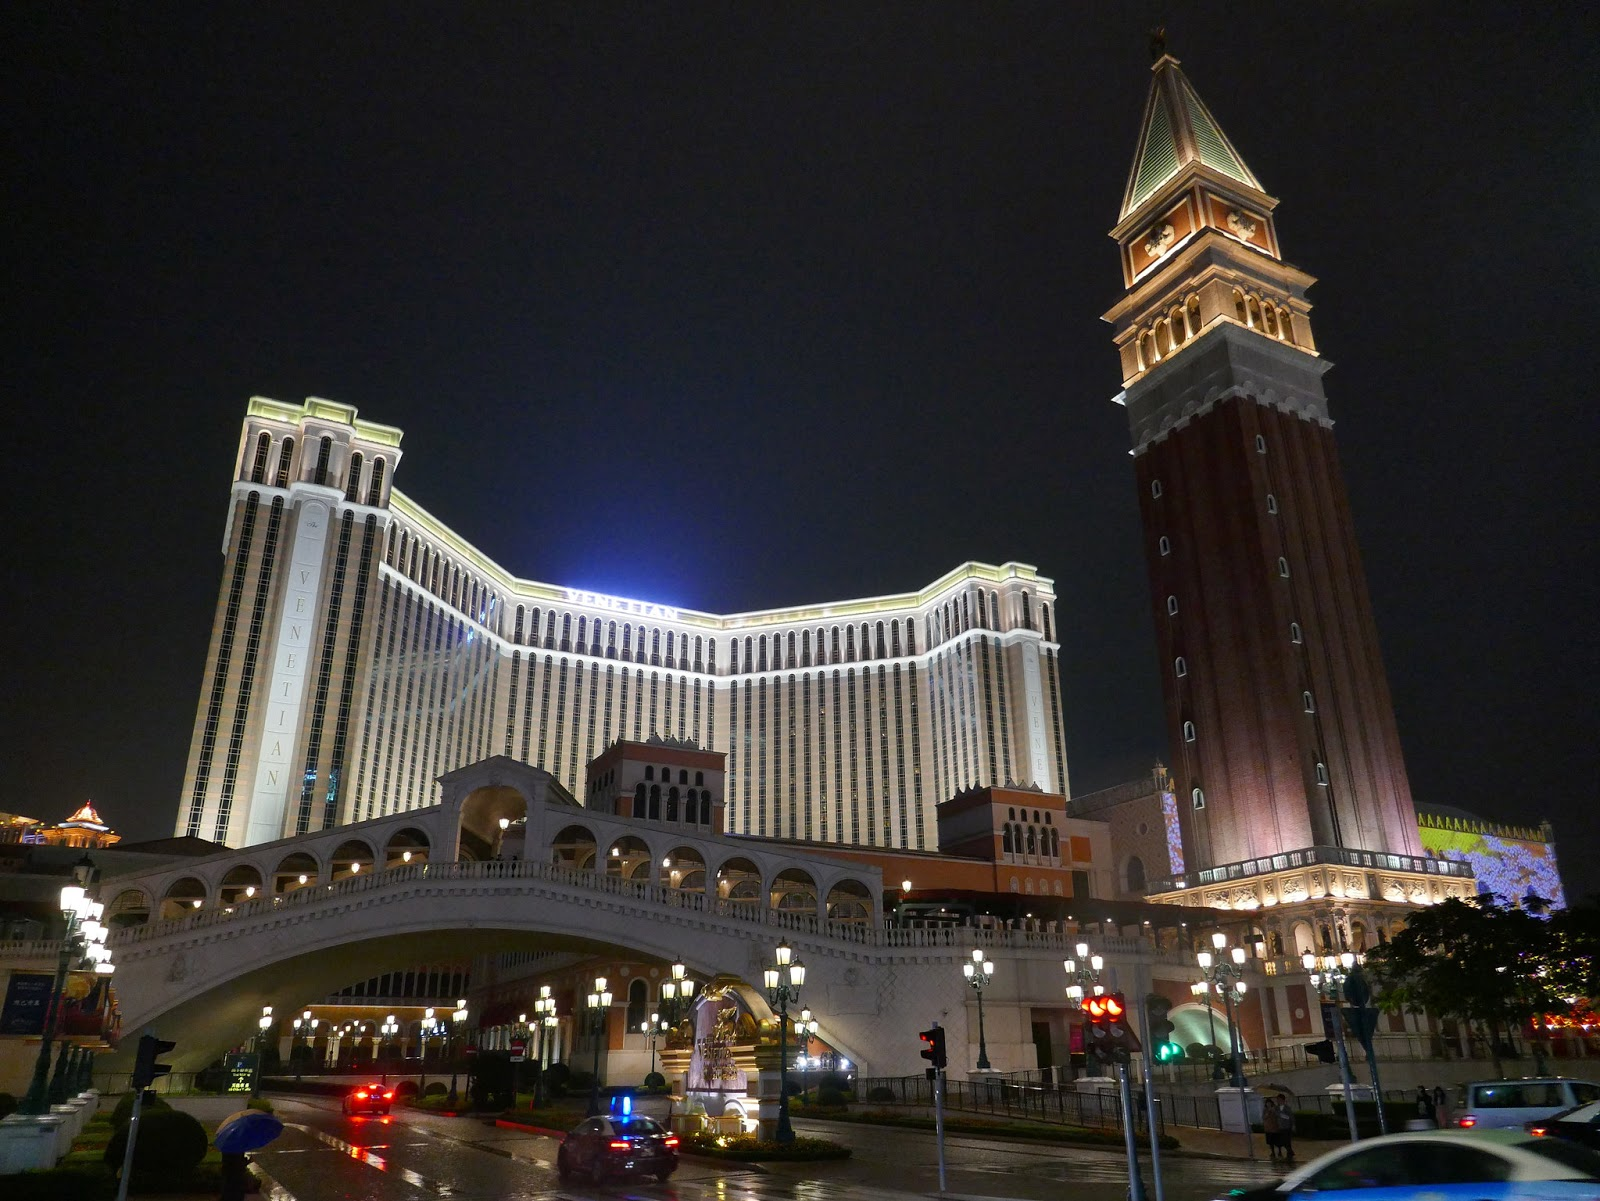 Three largest casinos in the world